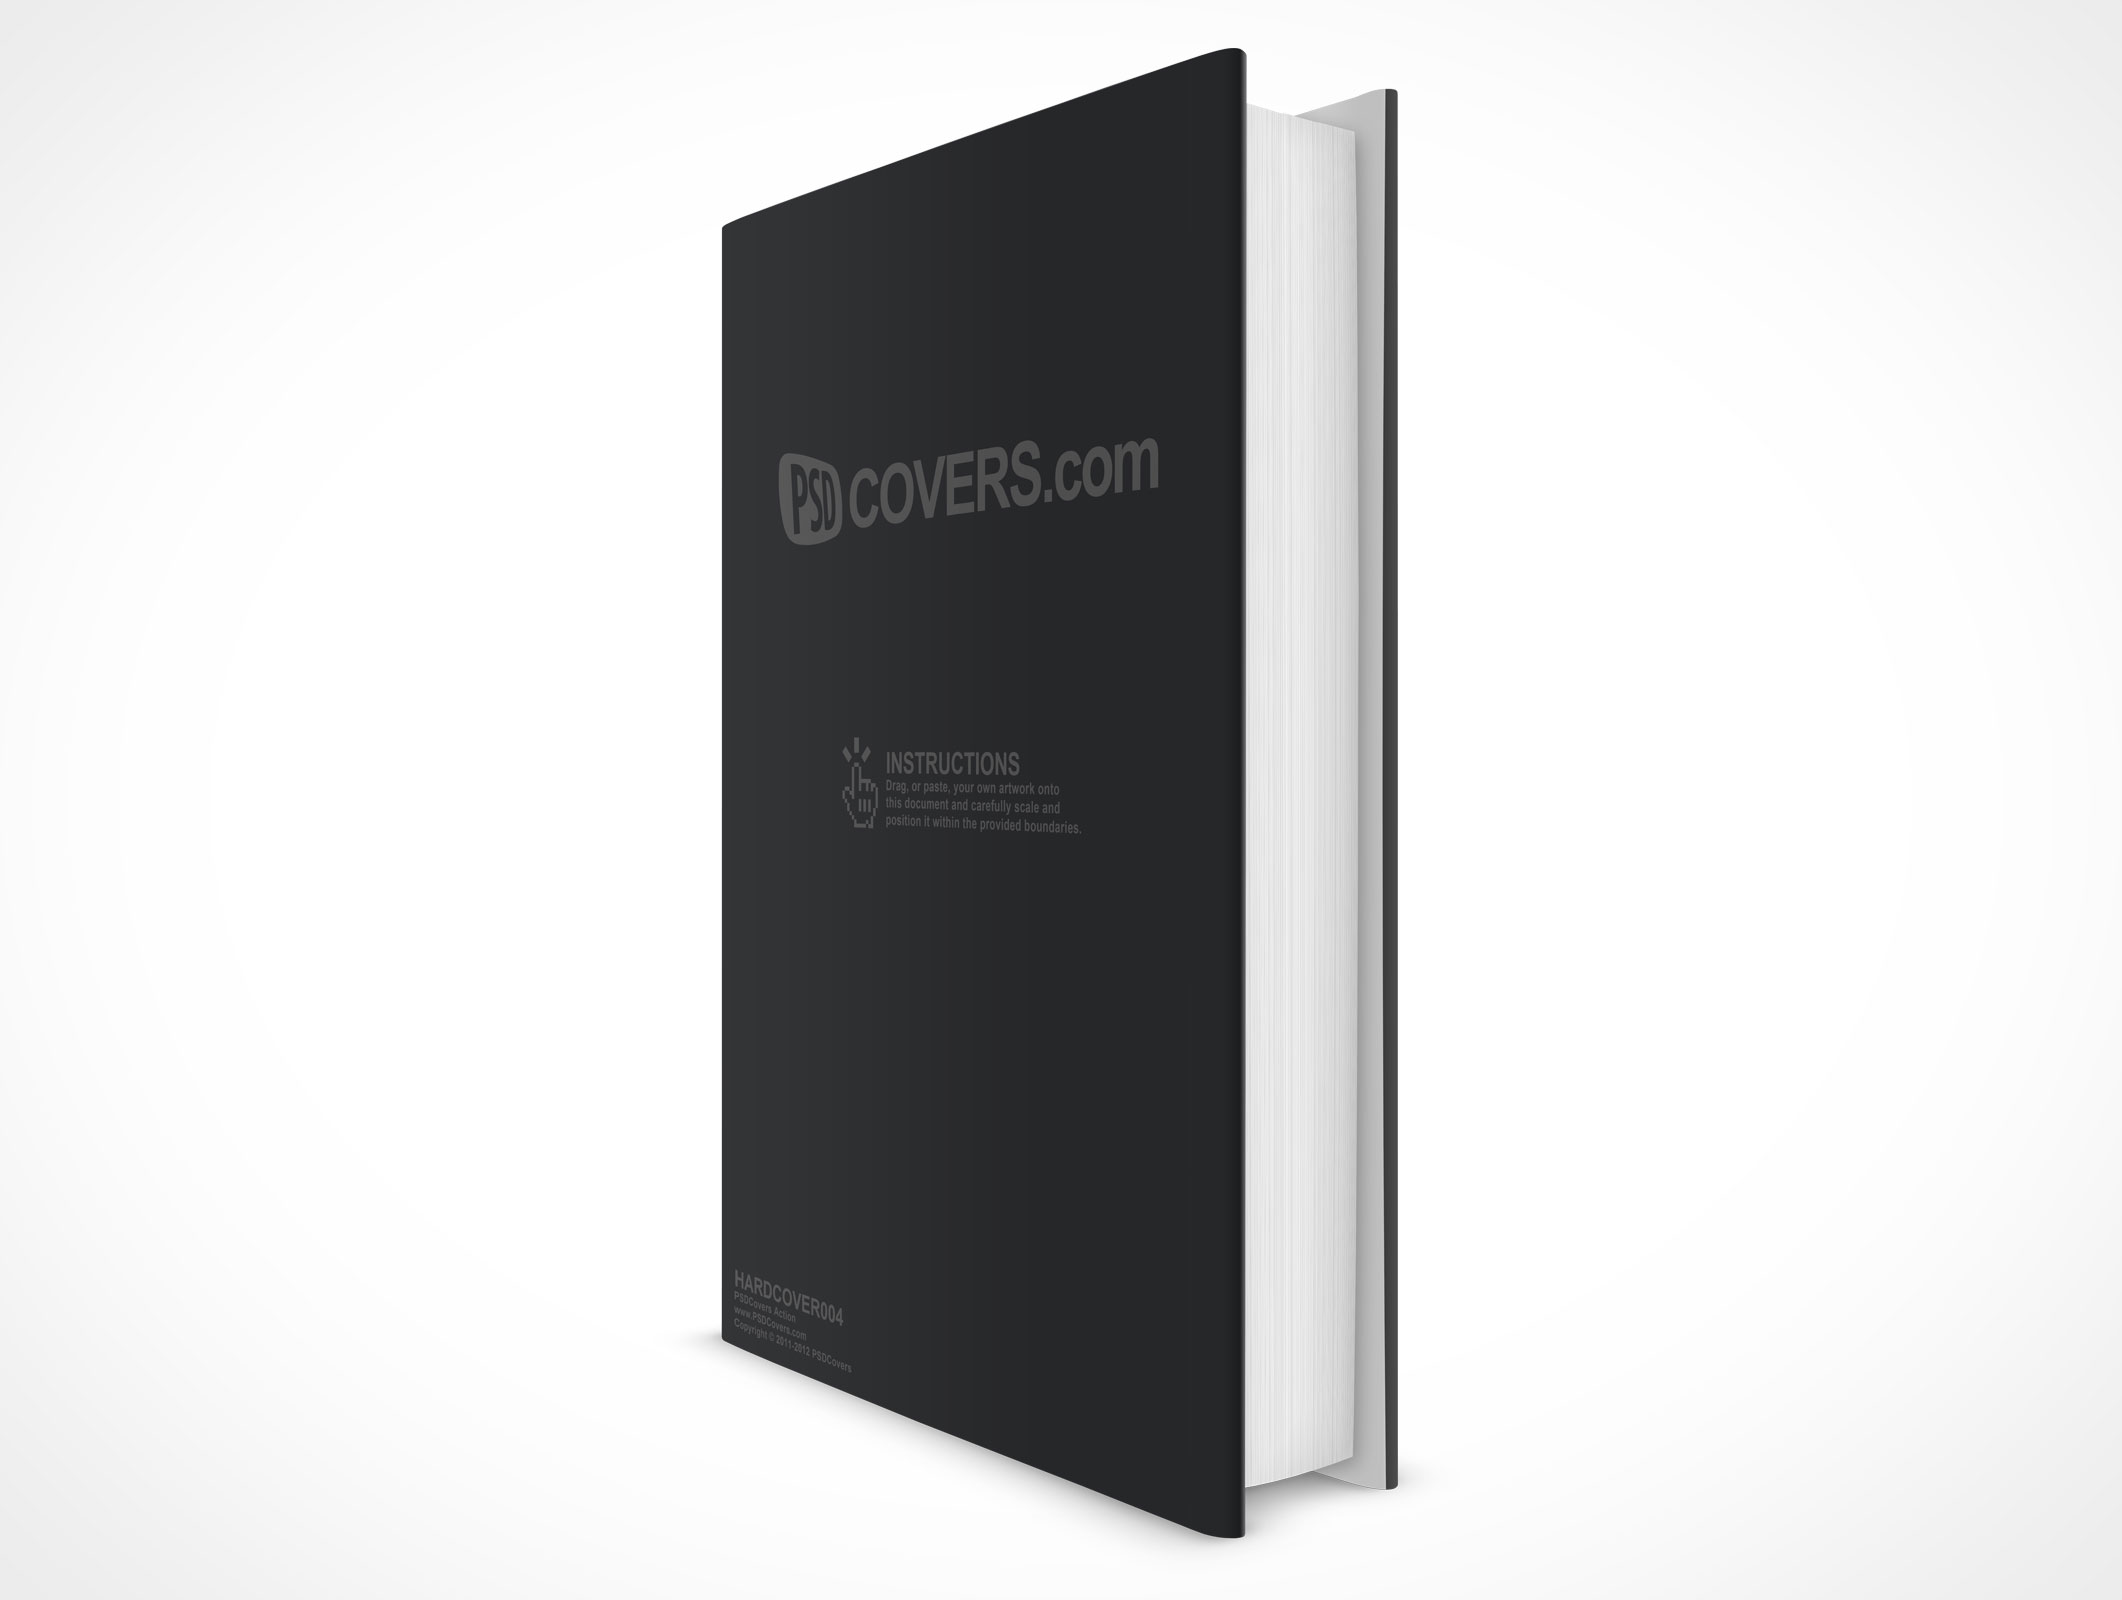 HARDCOVER004 • Market Your PSD Mockups for hardcover